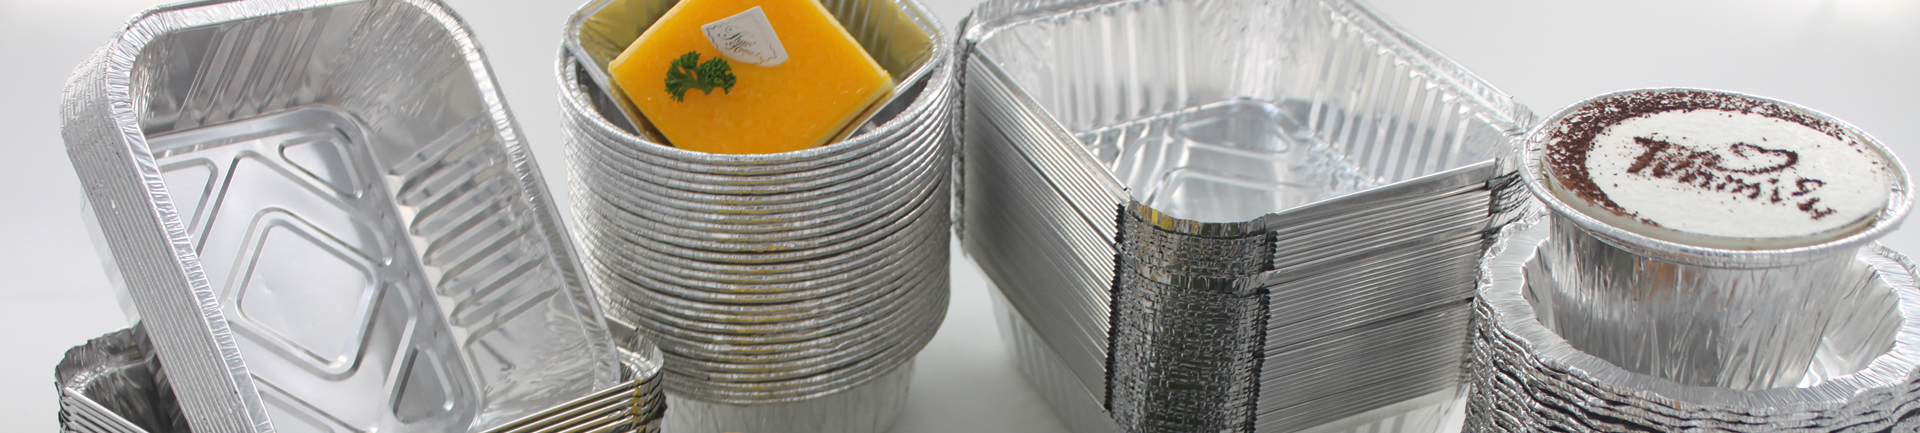 Xiongwei Aluminum-Jinhua Xiongwei Aluminum Co., Ltd. is a comprehensive export enterprise specializing in aluminum foil products.